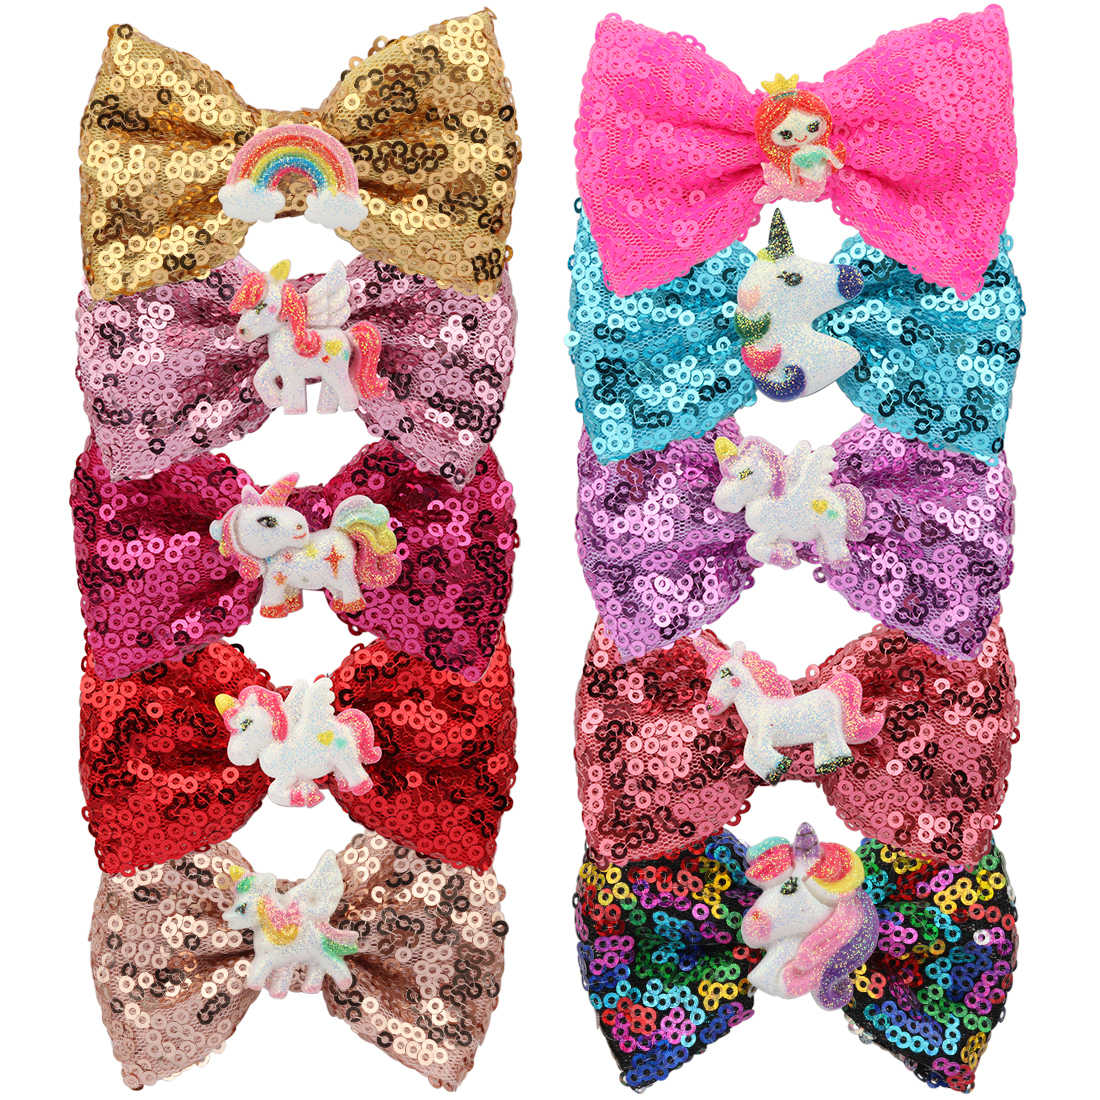 1 PC Girls Glitter Bows Hairpins Unicorn Barrettes Mermaid Princess Children Shiny Hairbows 3 Inch Bow Kid Hairgrips Head Wear